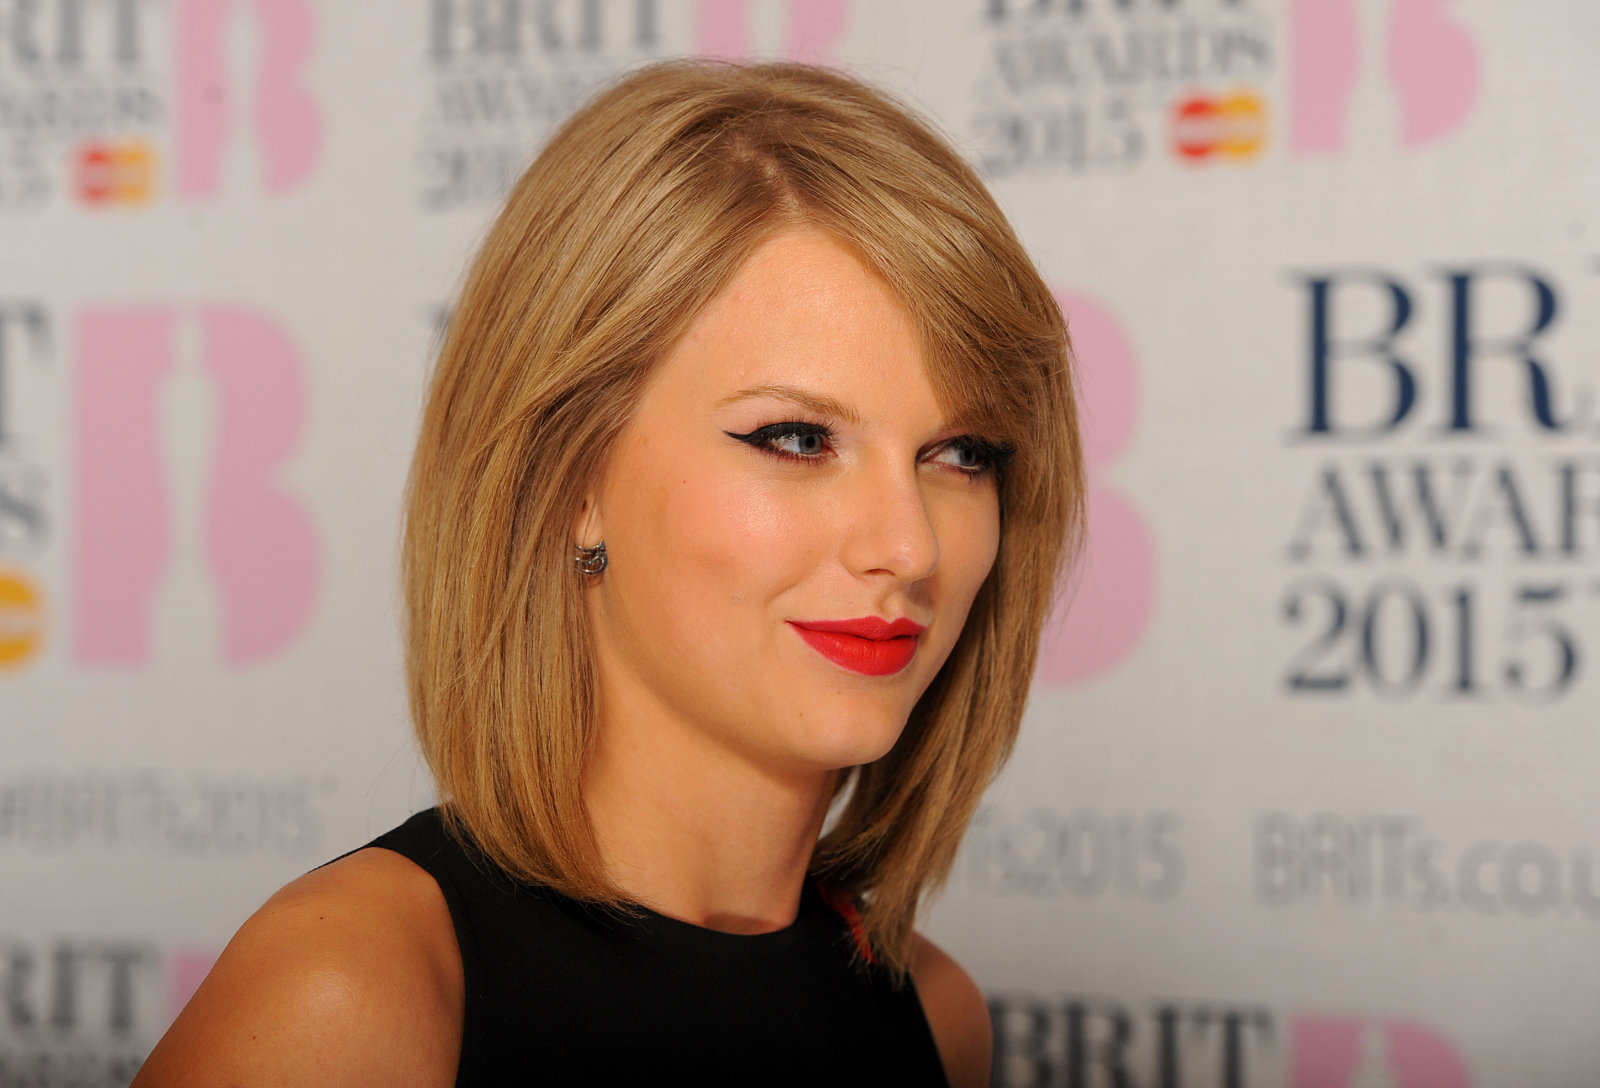 File photo dated 25/2/2015 of singer Taylor Swift whose fans have shared their excitement after they were among a select few to preview her highly anticipated new album Reputation at a listening party in the UK.